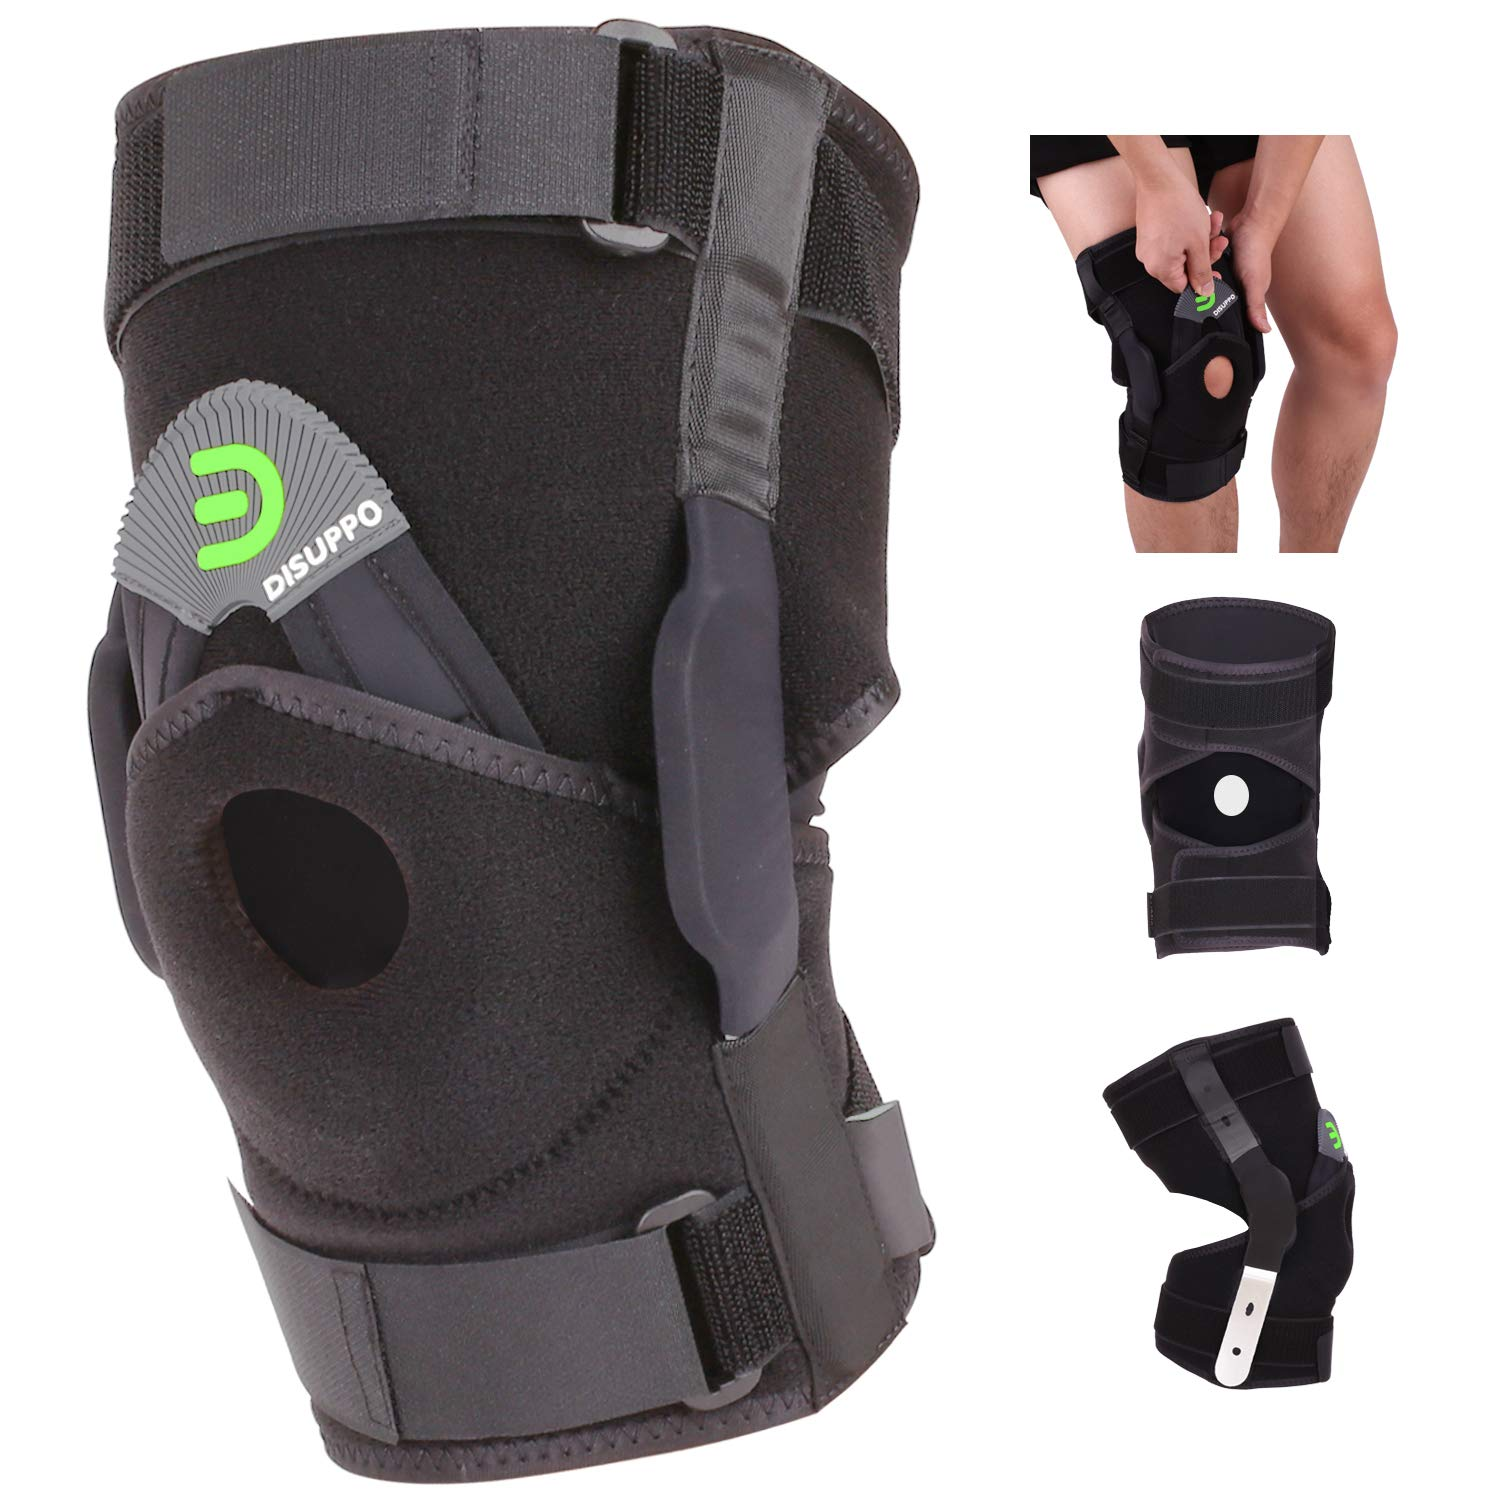 DISUPPO Hinged Knee Brace Support Women Men, Adjustable Open Patella Stabilizer for Sports Trauma, Sprains, Arthritis, ACL, Meniscus Tears, Ligament Injuries by DISUPPO